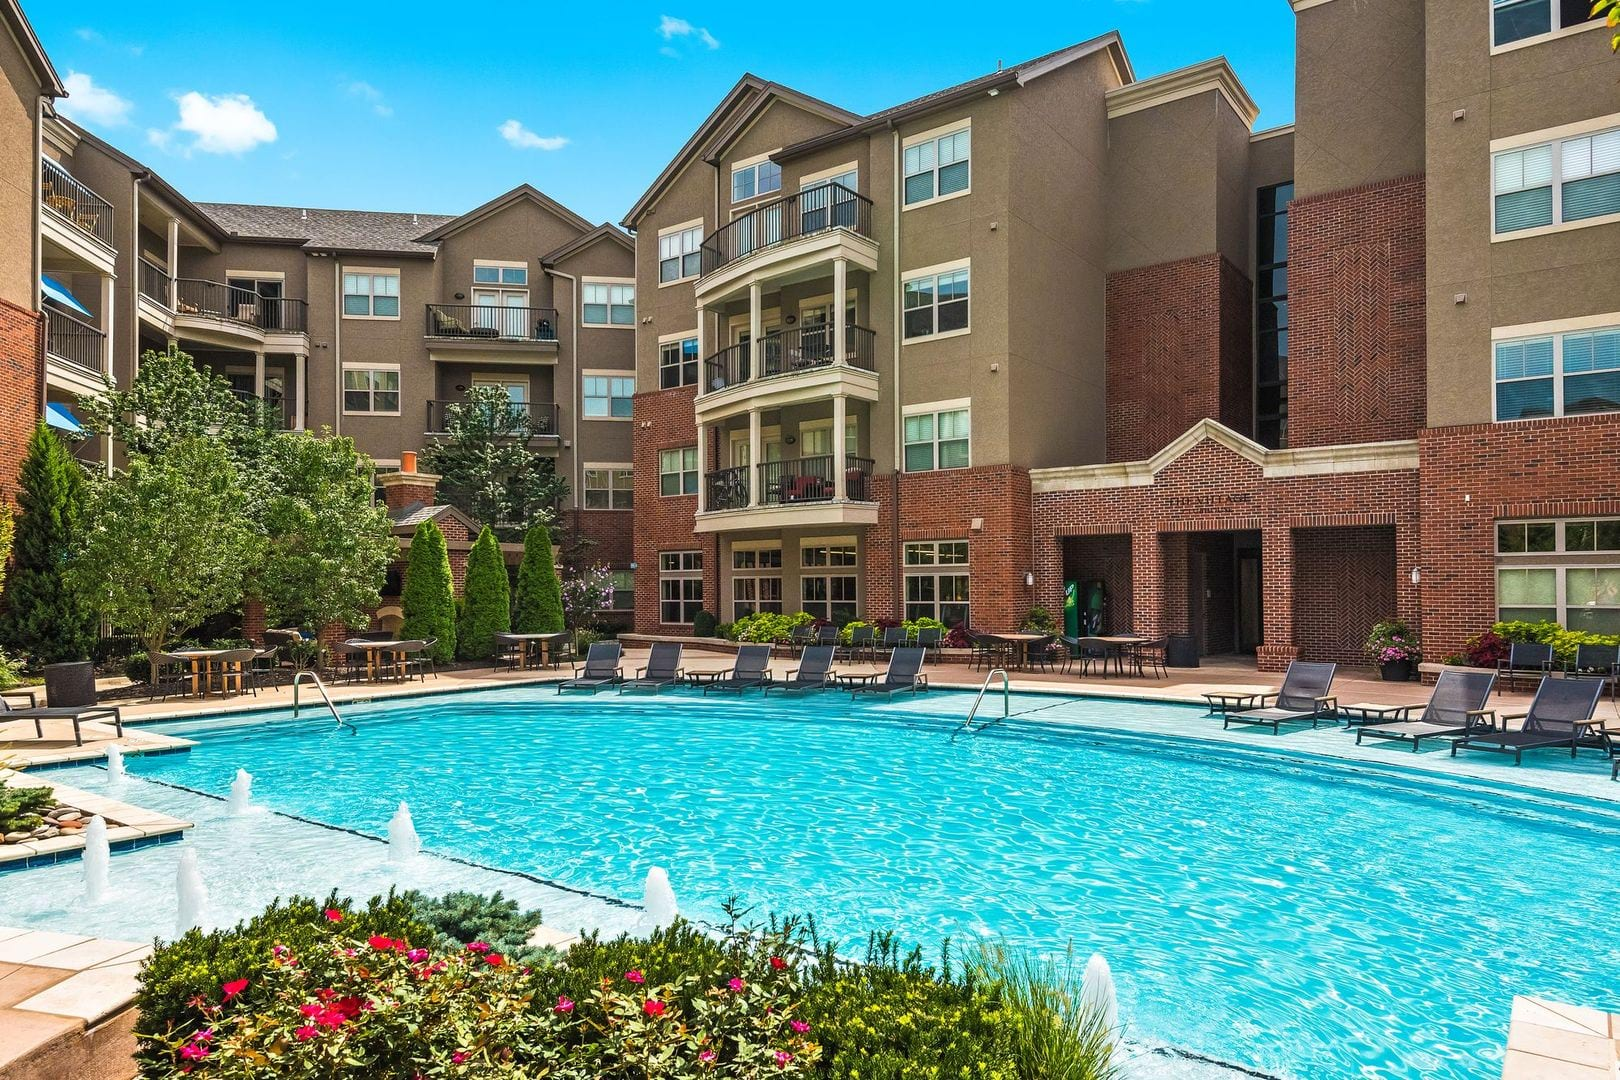 Luxury Apartments in Overland Park, KS | Village Mission Farms